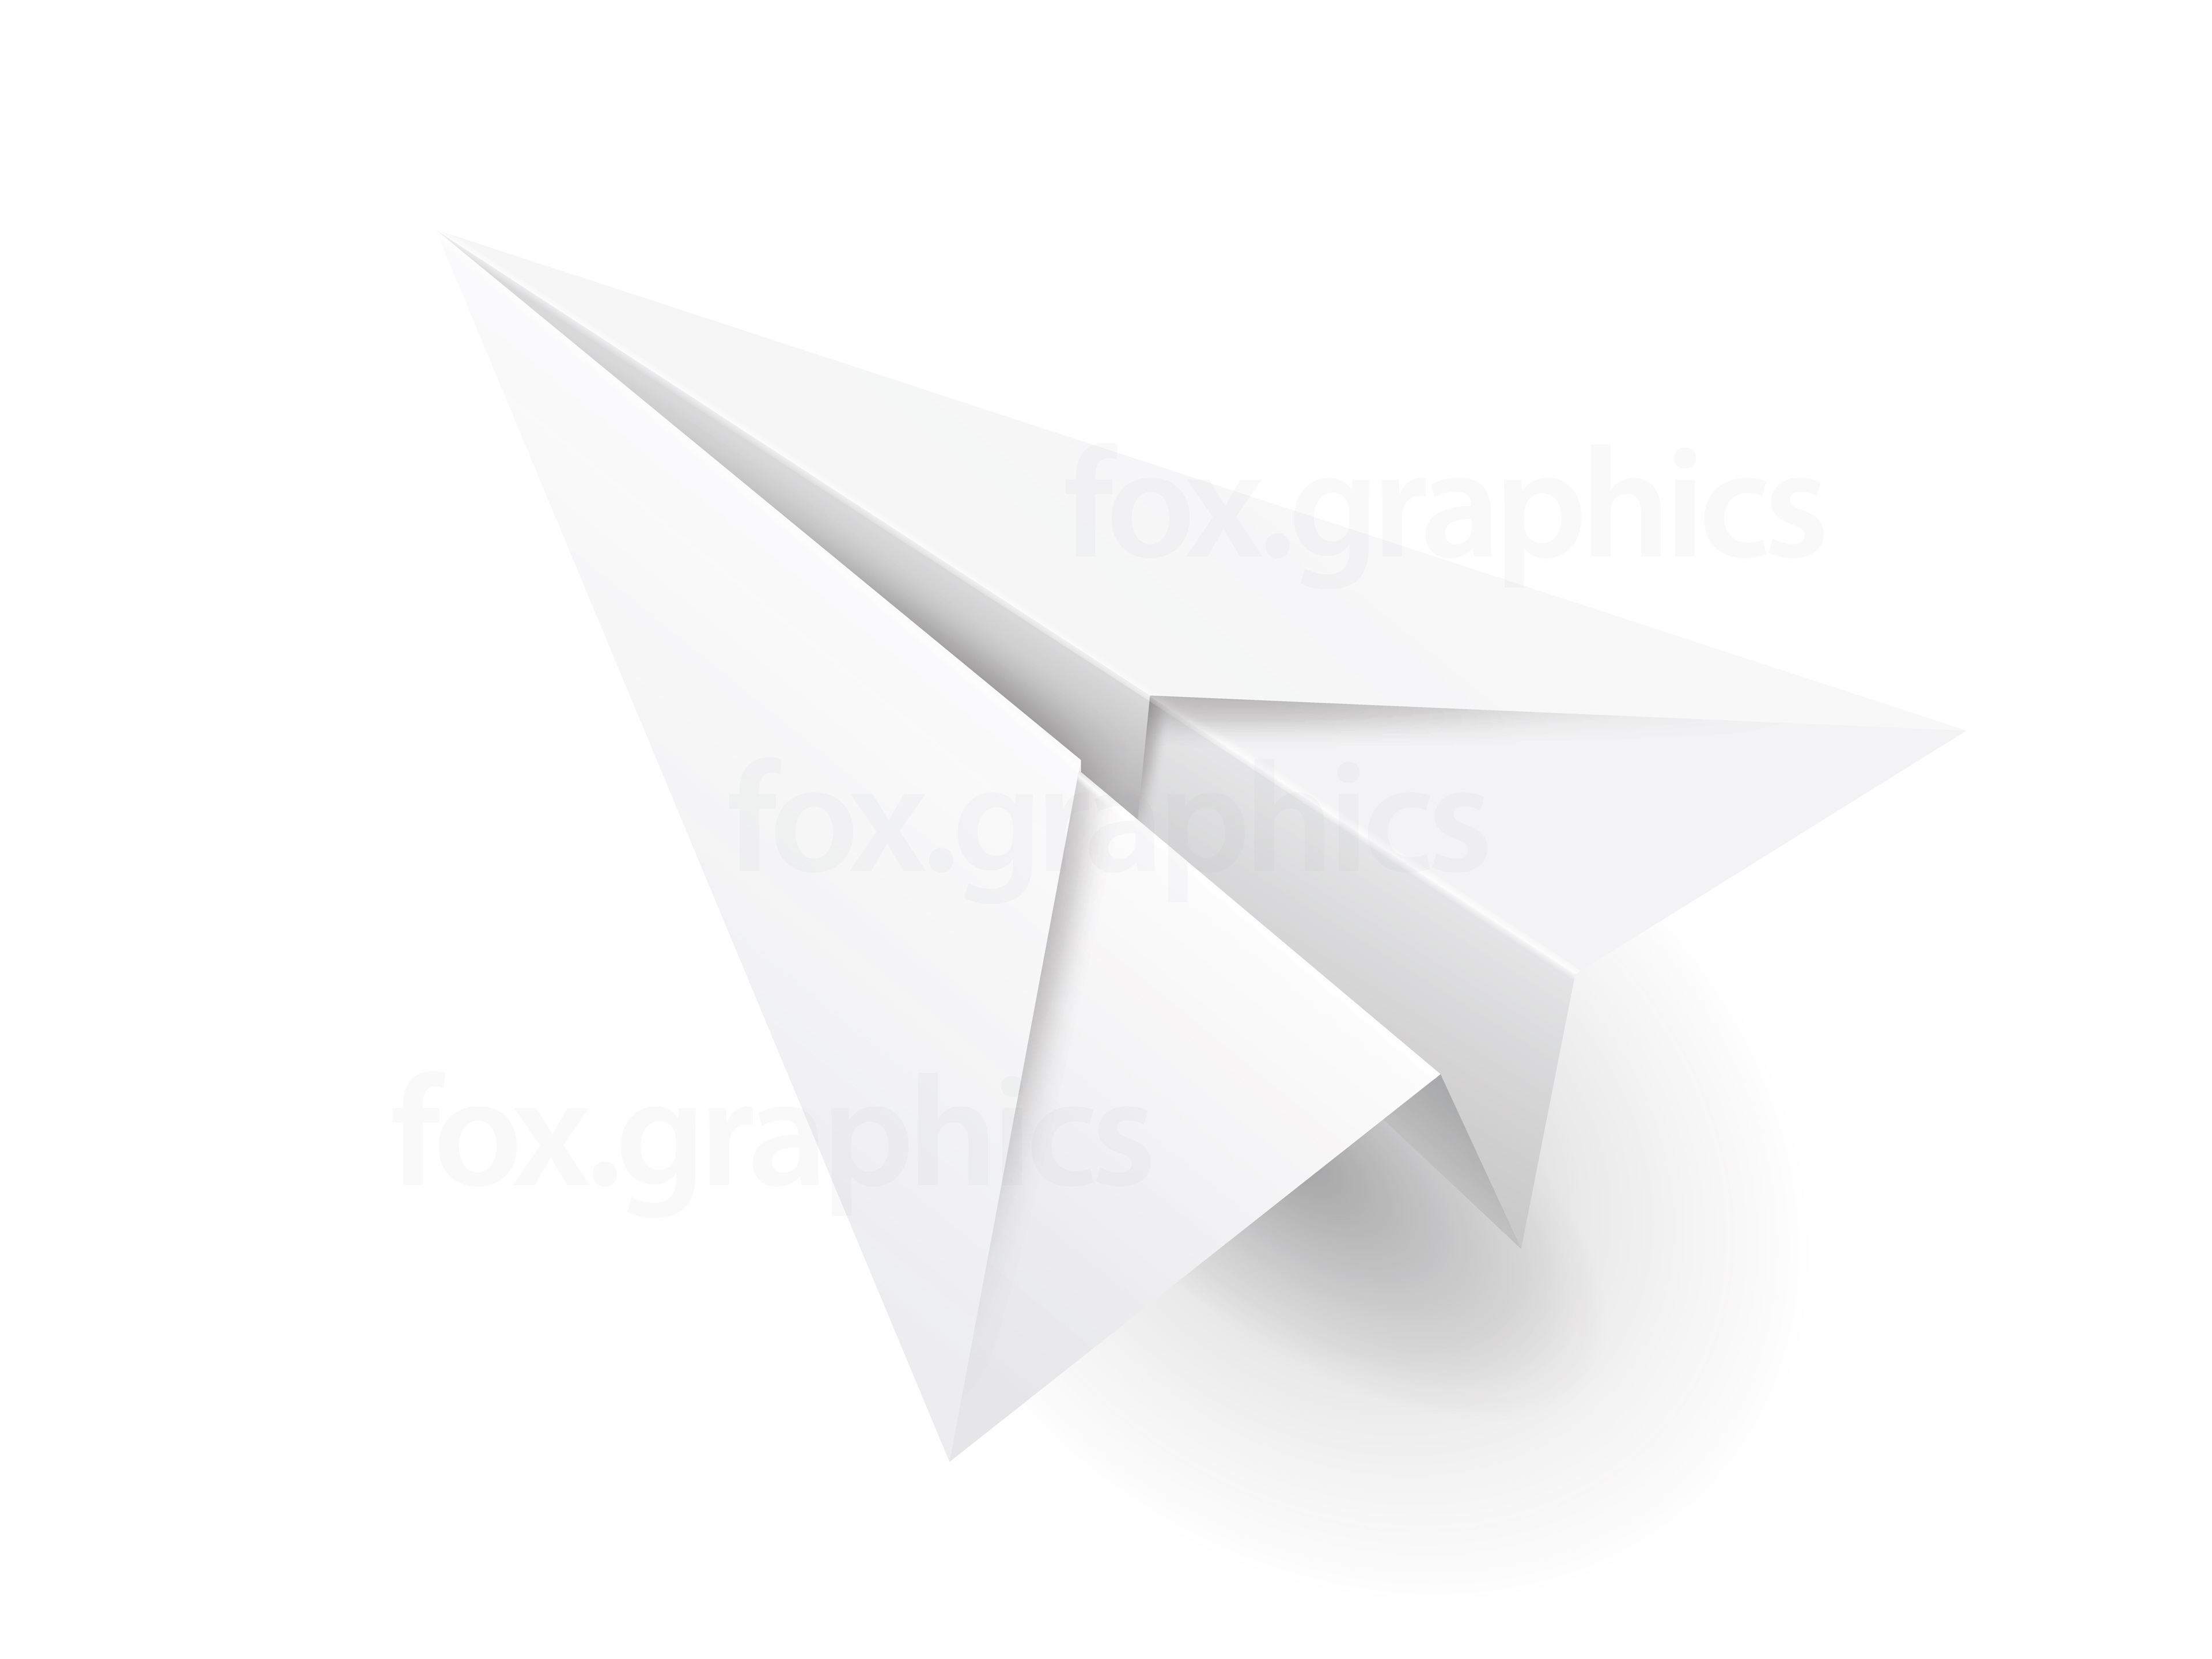 Paper Airplane Png Hd Transparent Paper 524303 Png Images Pngio